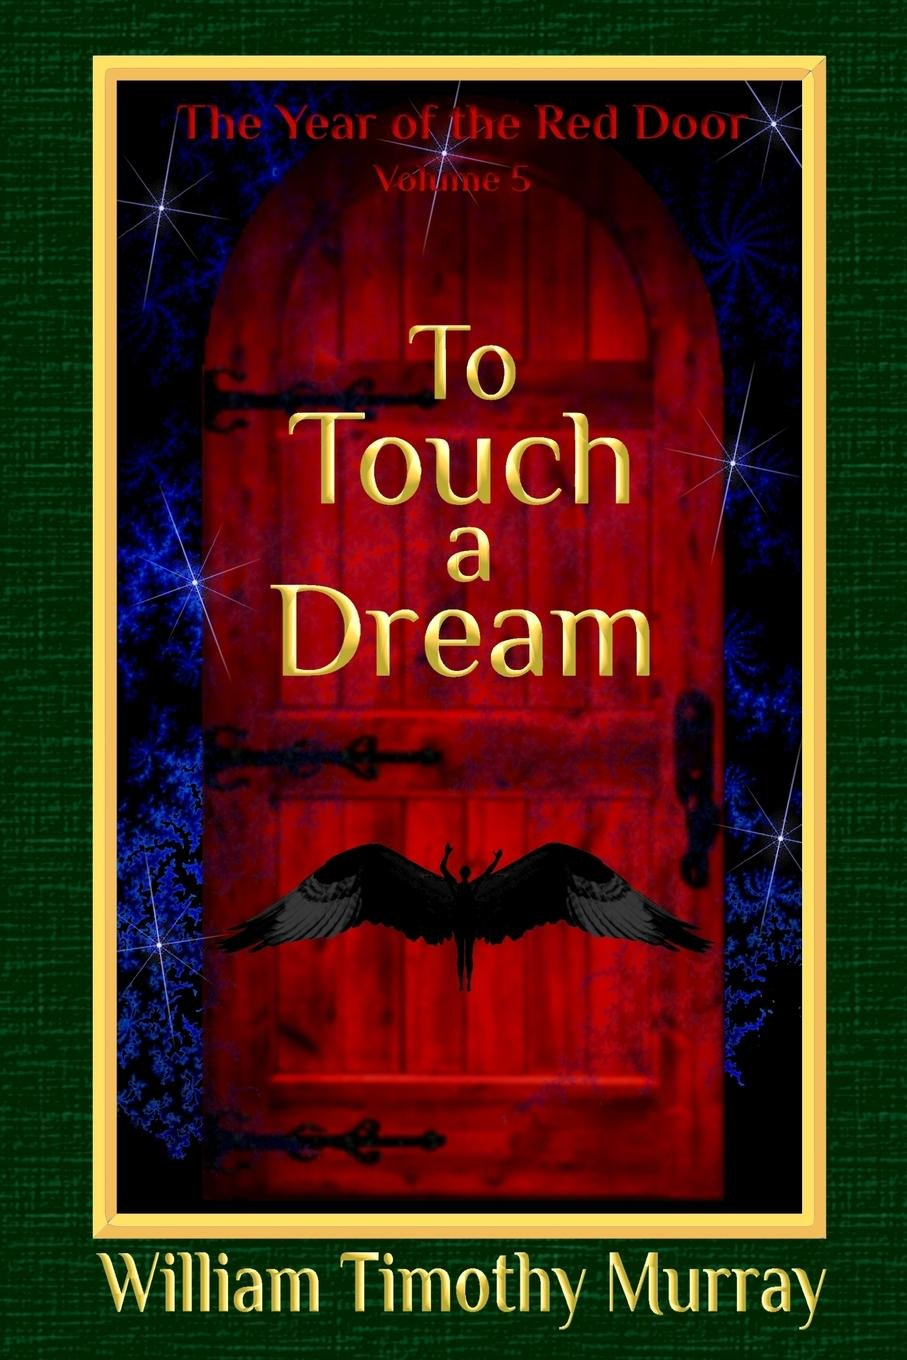 To Touch A Dream Volume 5 Of The Year Of The Red Door William